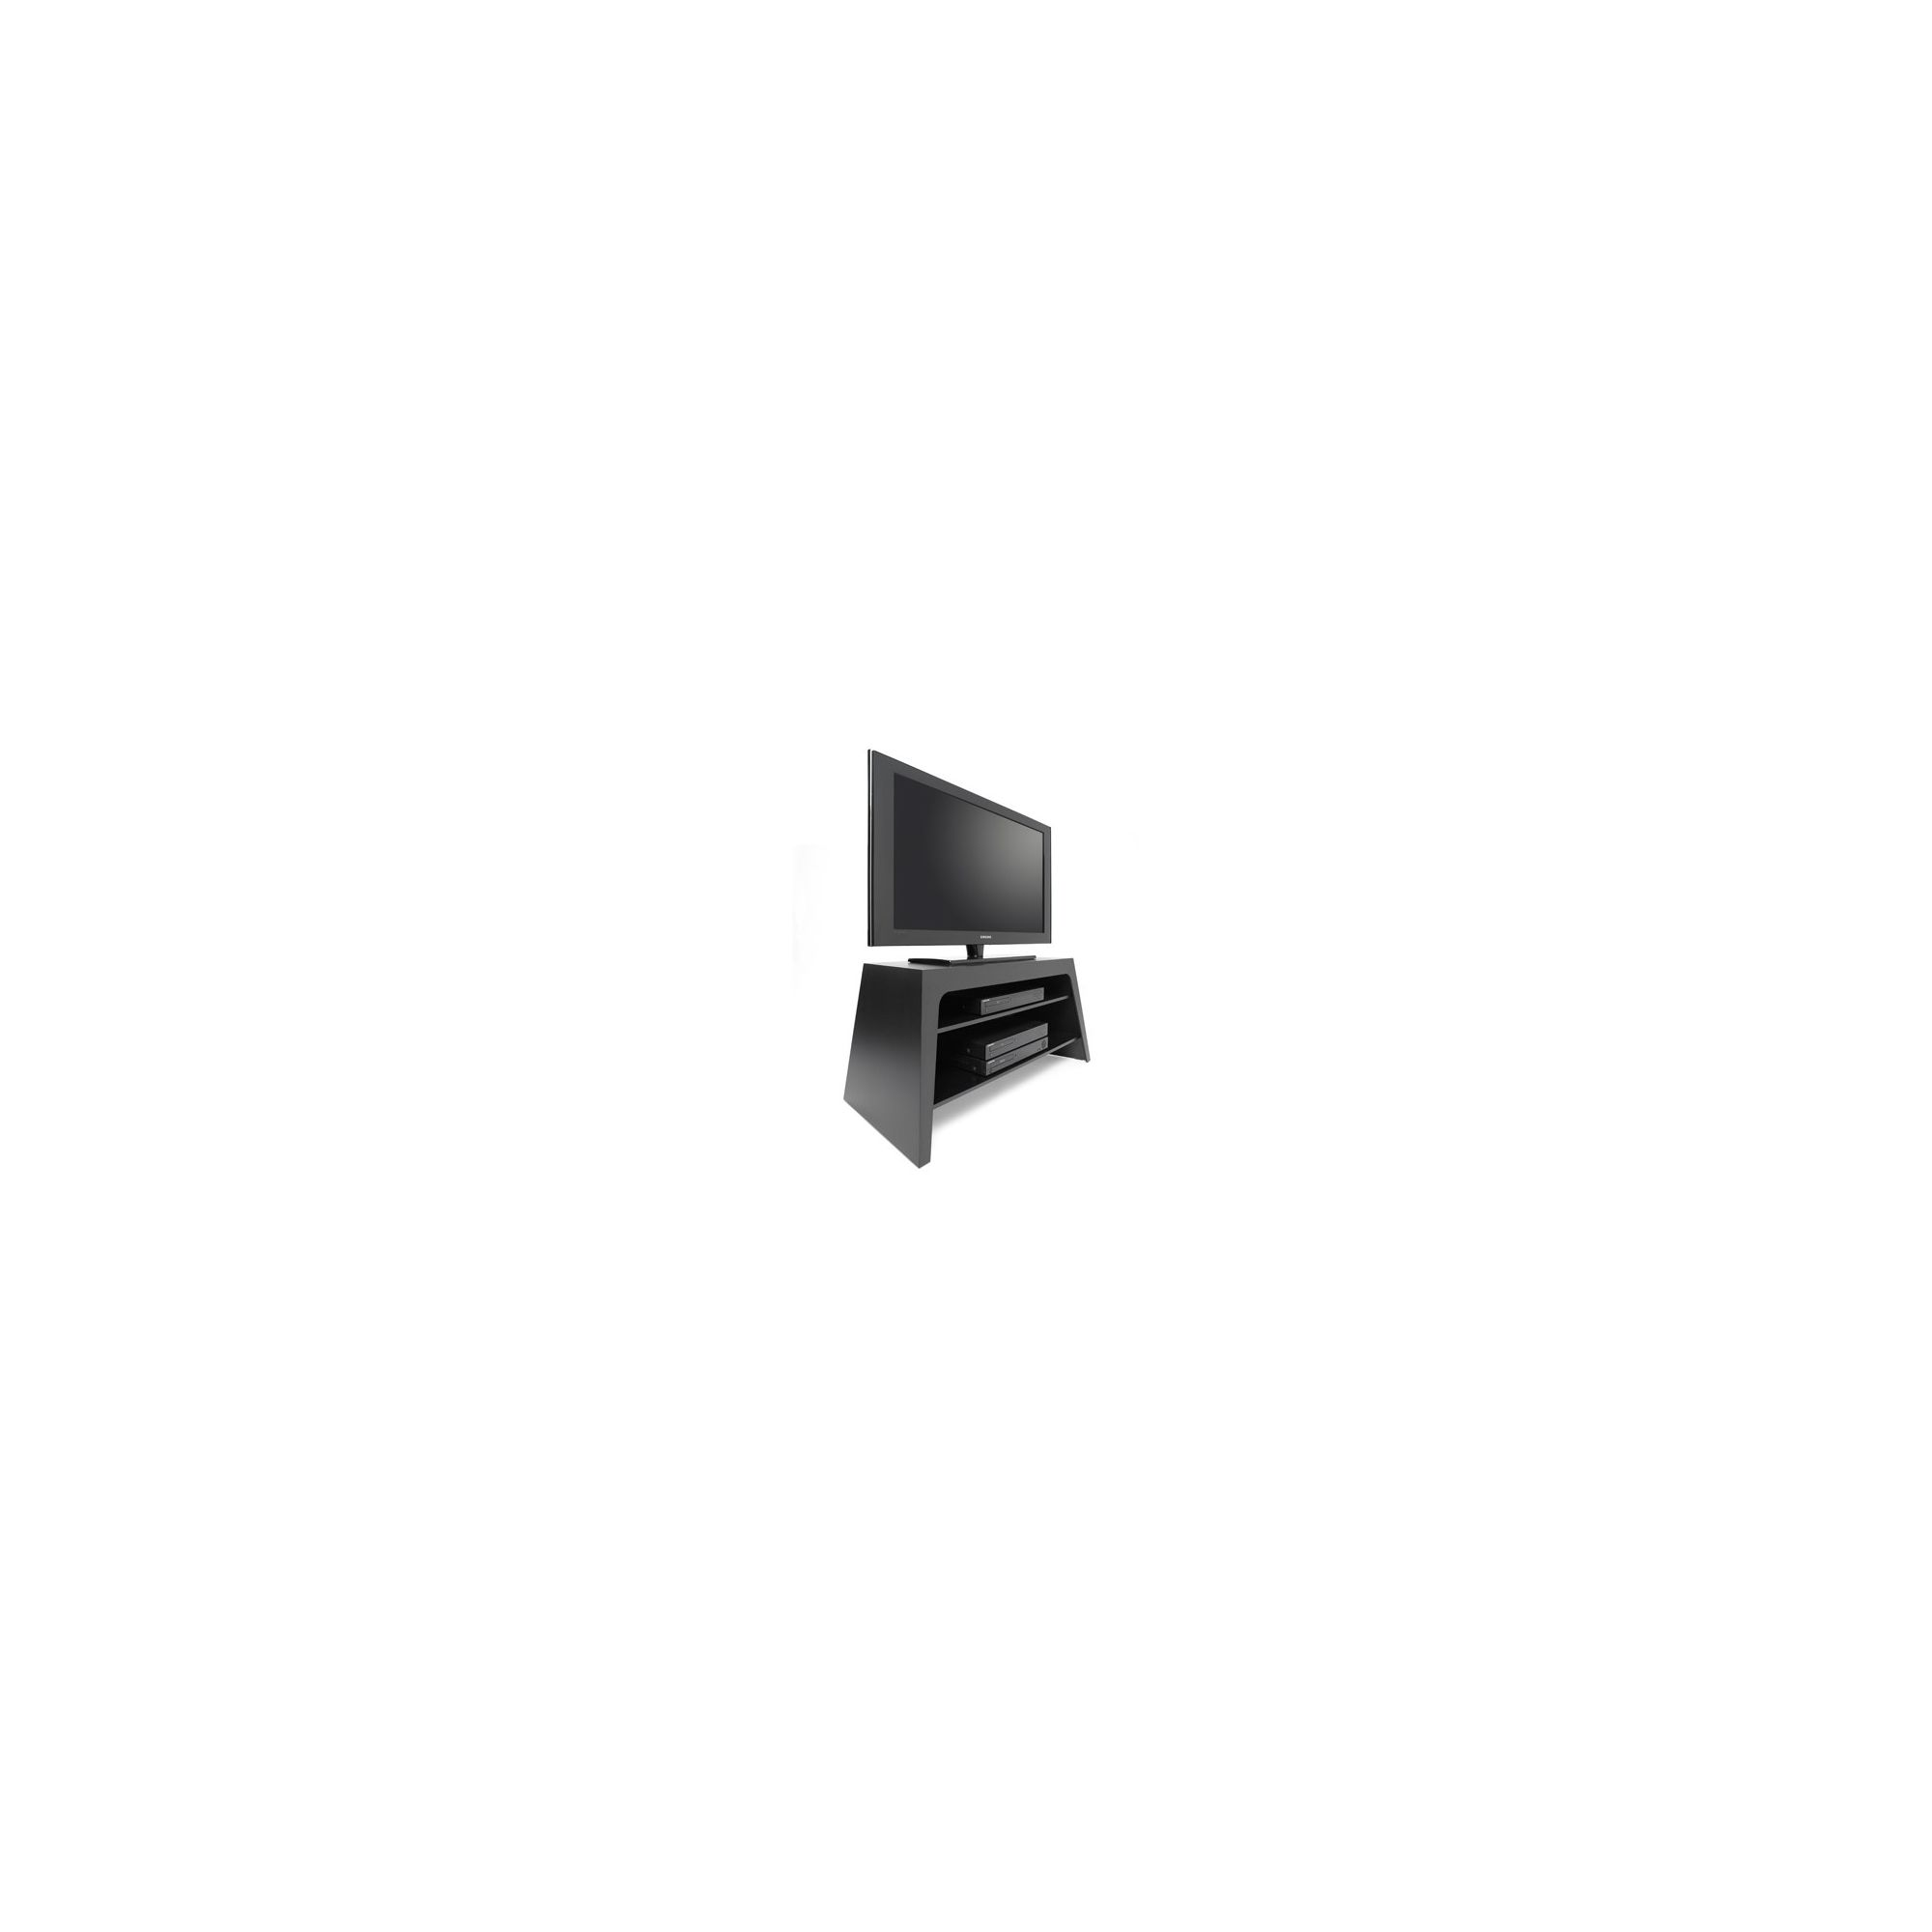 Mor Colorado TV Stand - Matt Black at Tesco Direct